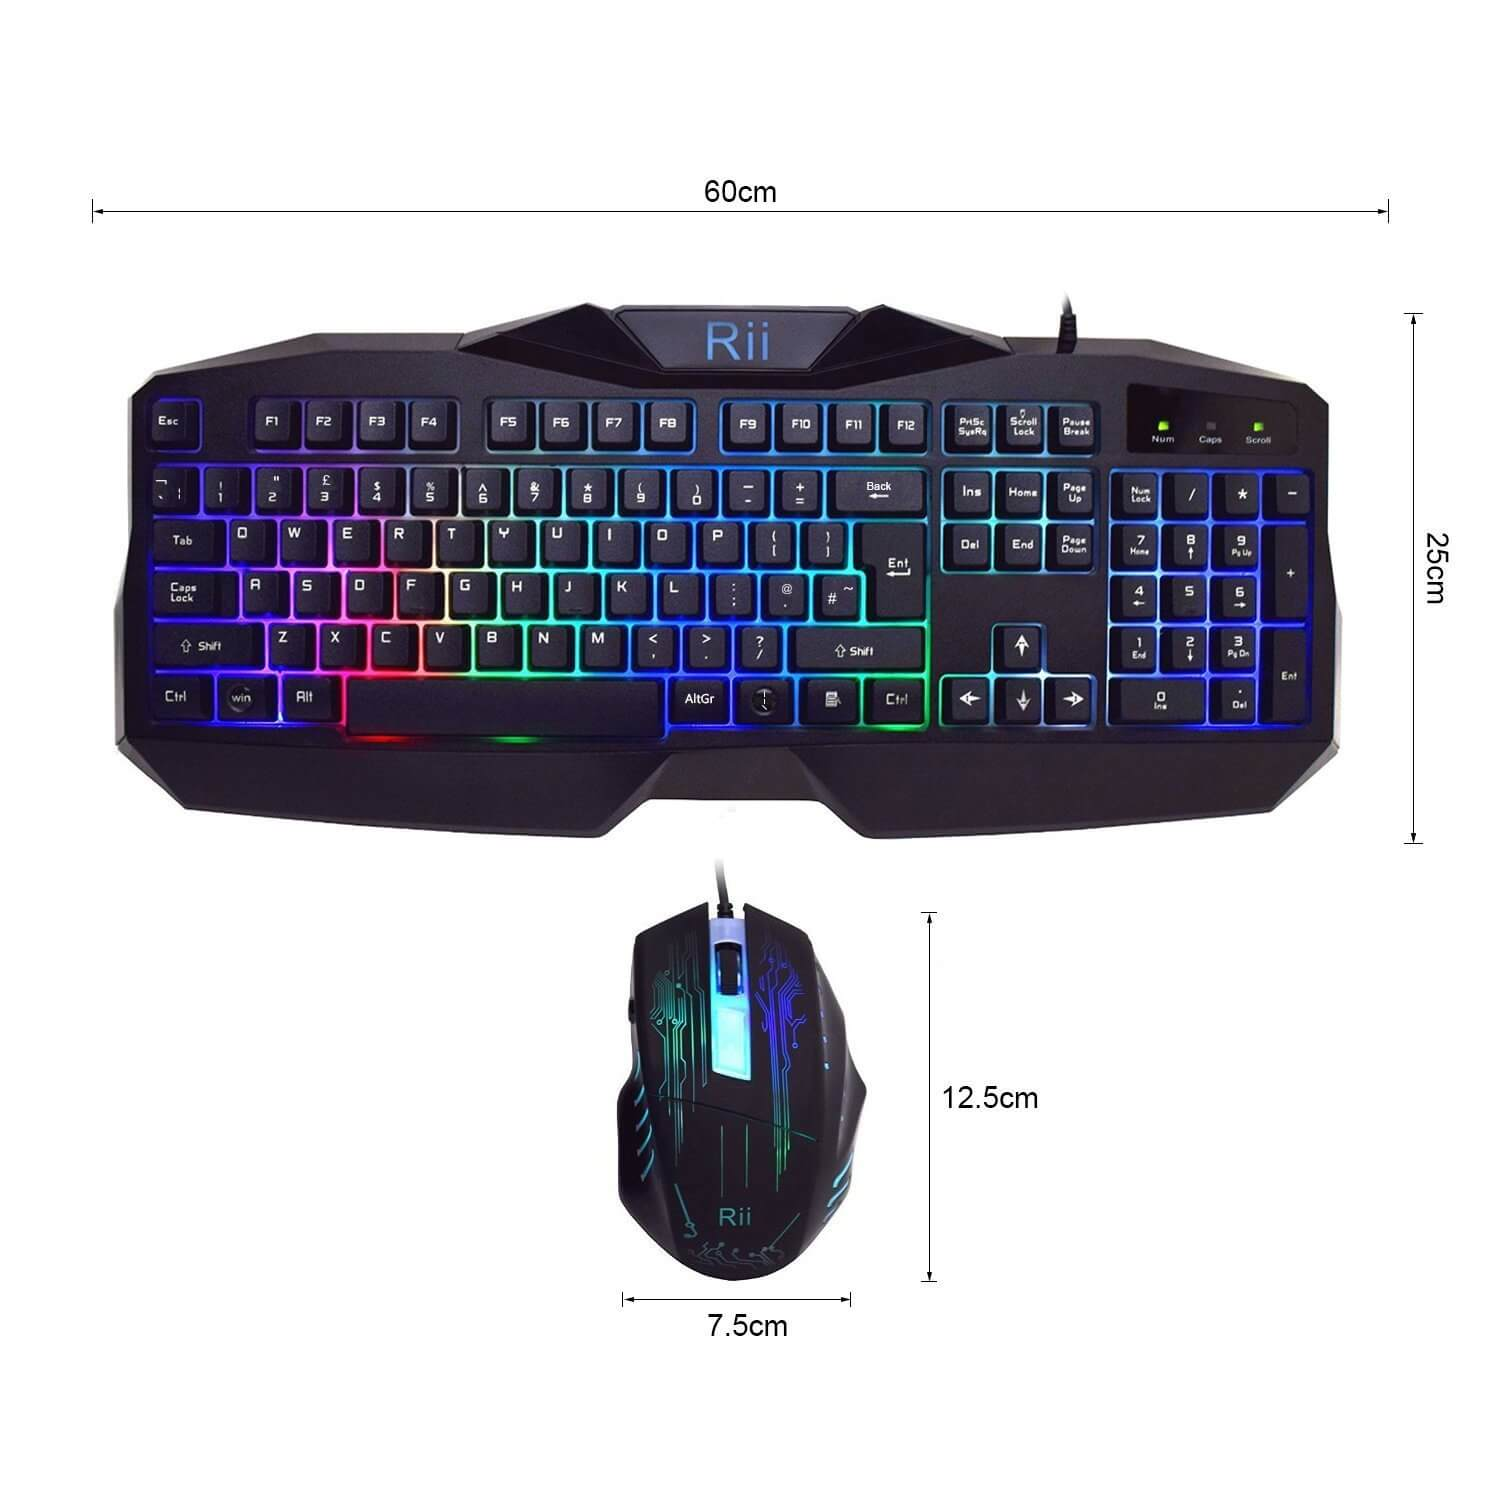 Rii Backlit Gaming Keyboard and Mouse Review